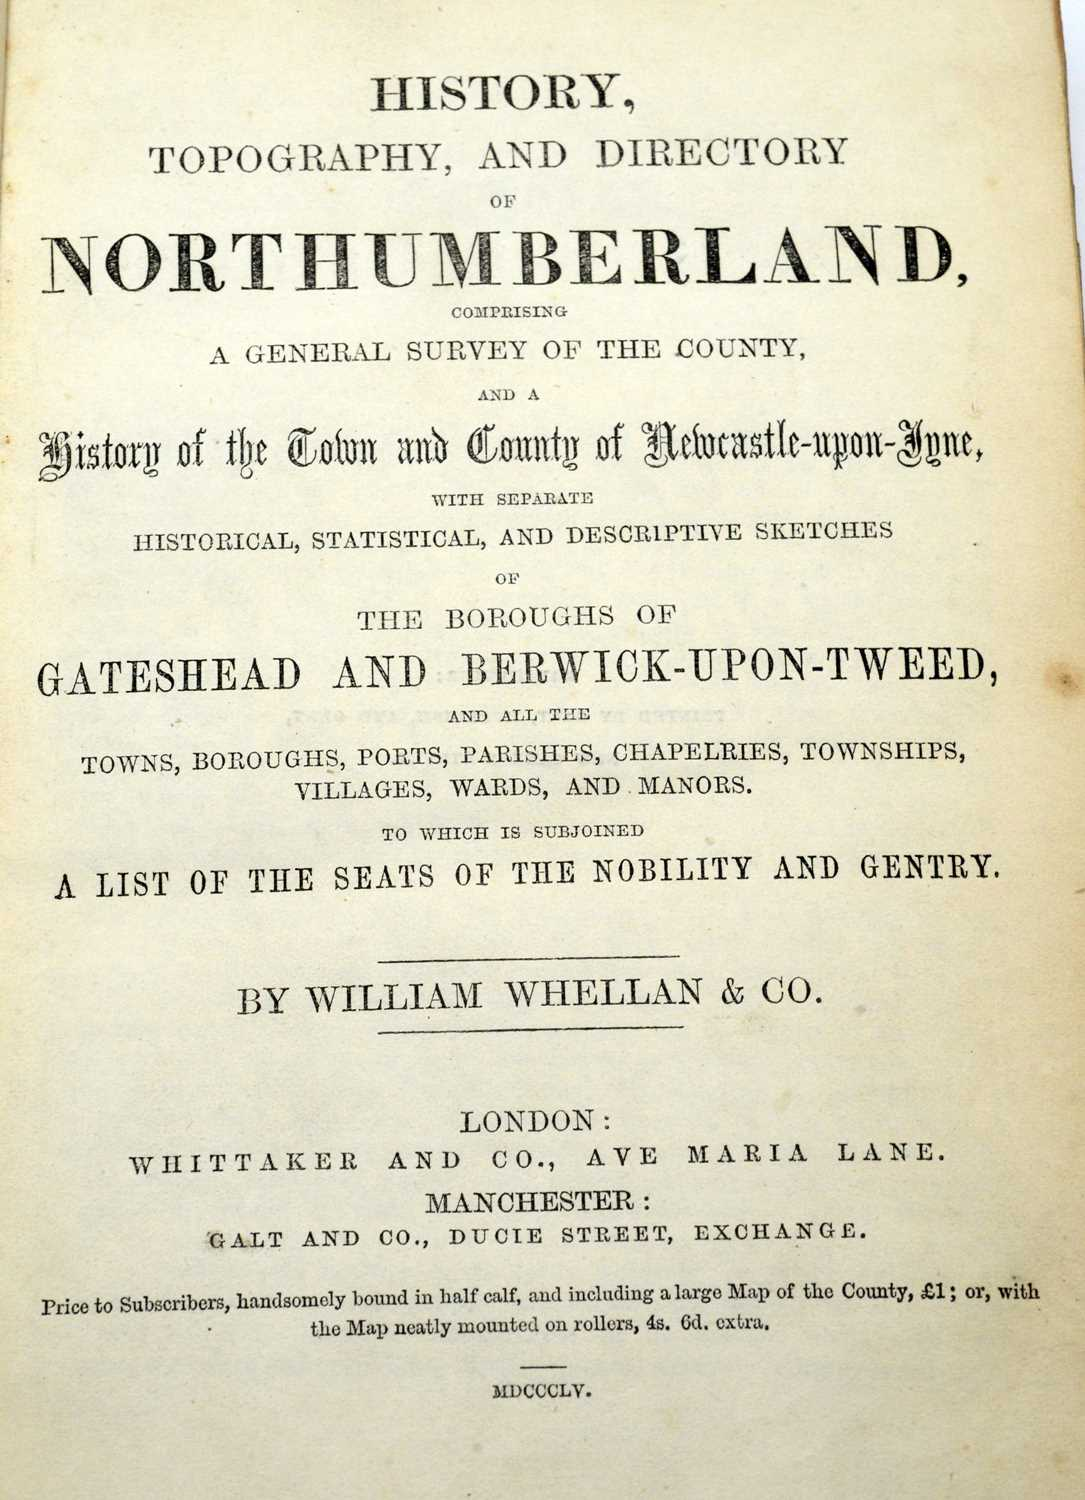 Bates (Cadwallader J.), Popular County Histories: Northumberland, and two other books - Image 2 of 4